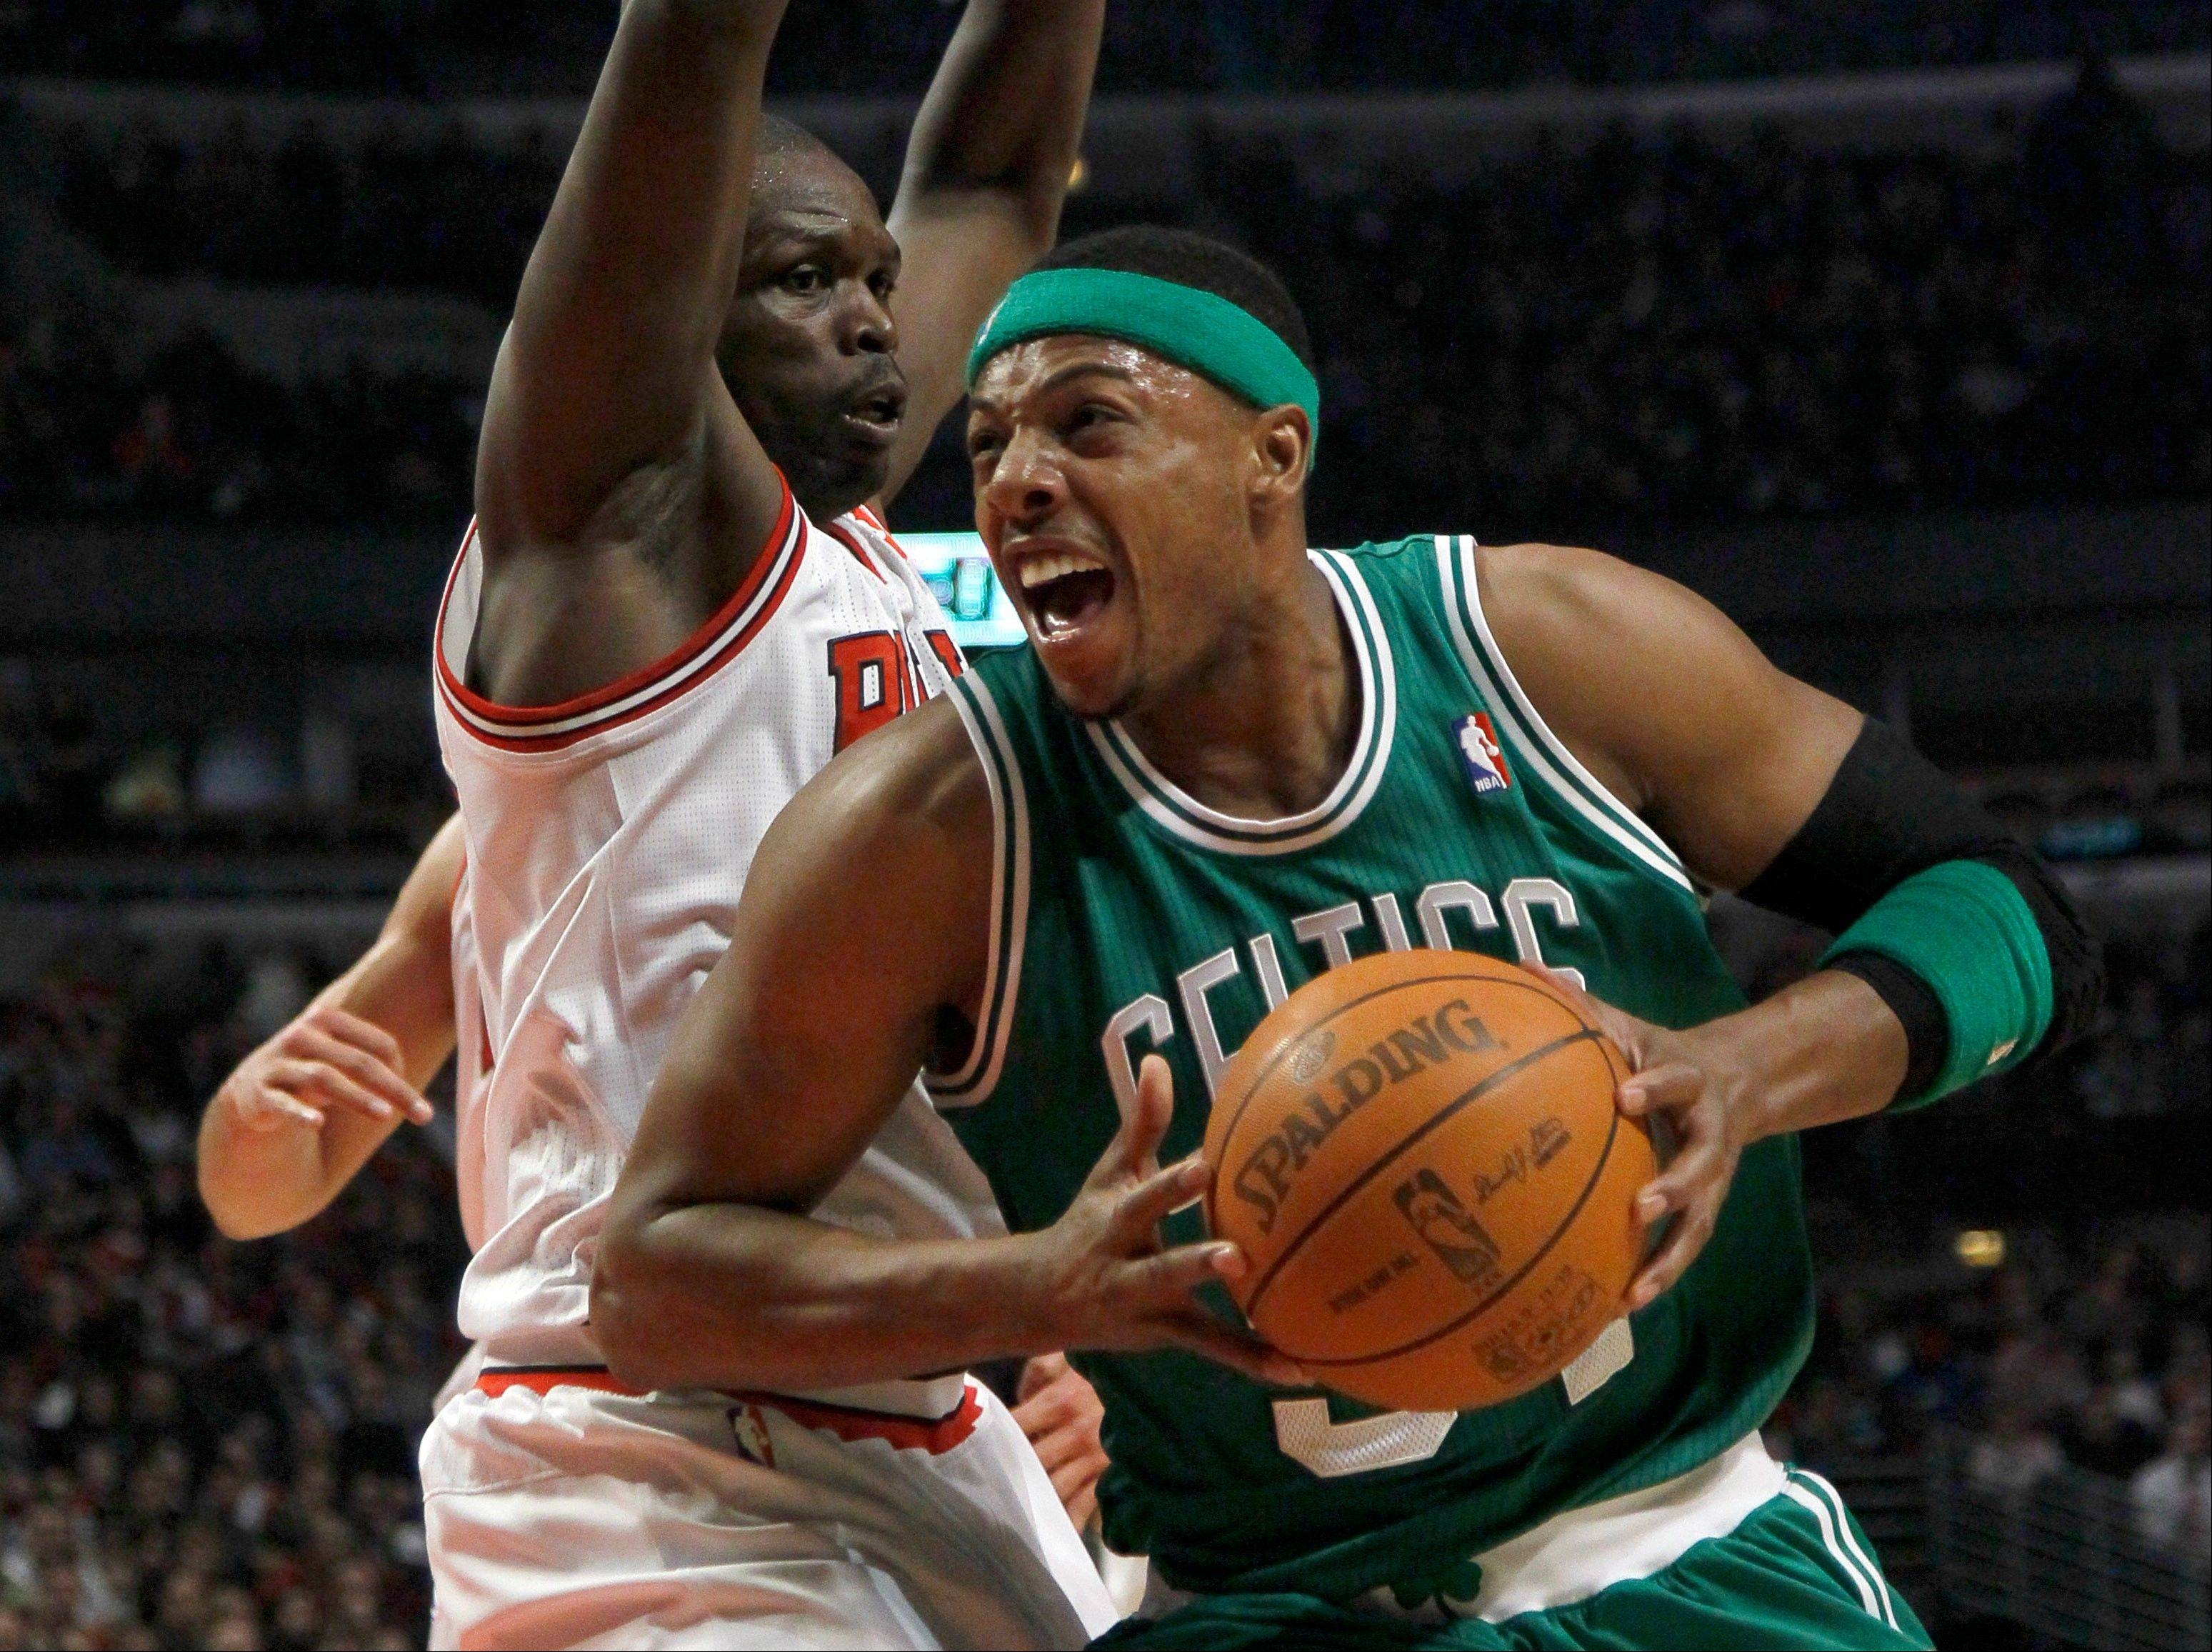 Boston Celtics small forward Paul Pierce tries to drive past Bulls small forward Luol Deng during the first half Thursday night at the United Center.